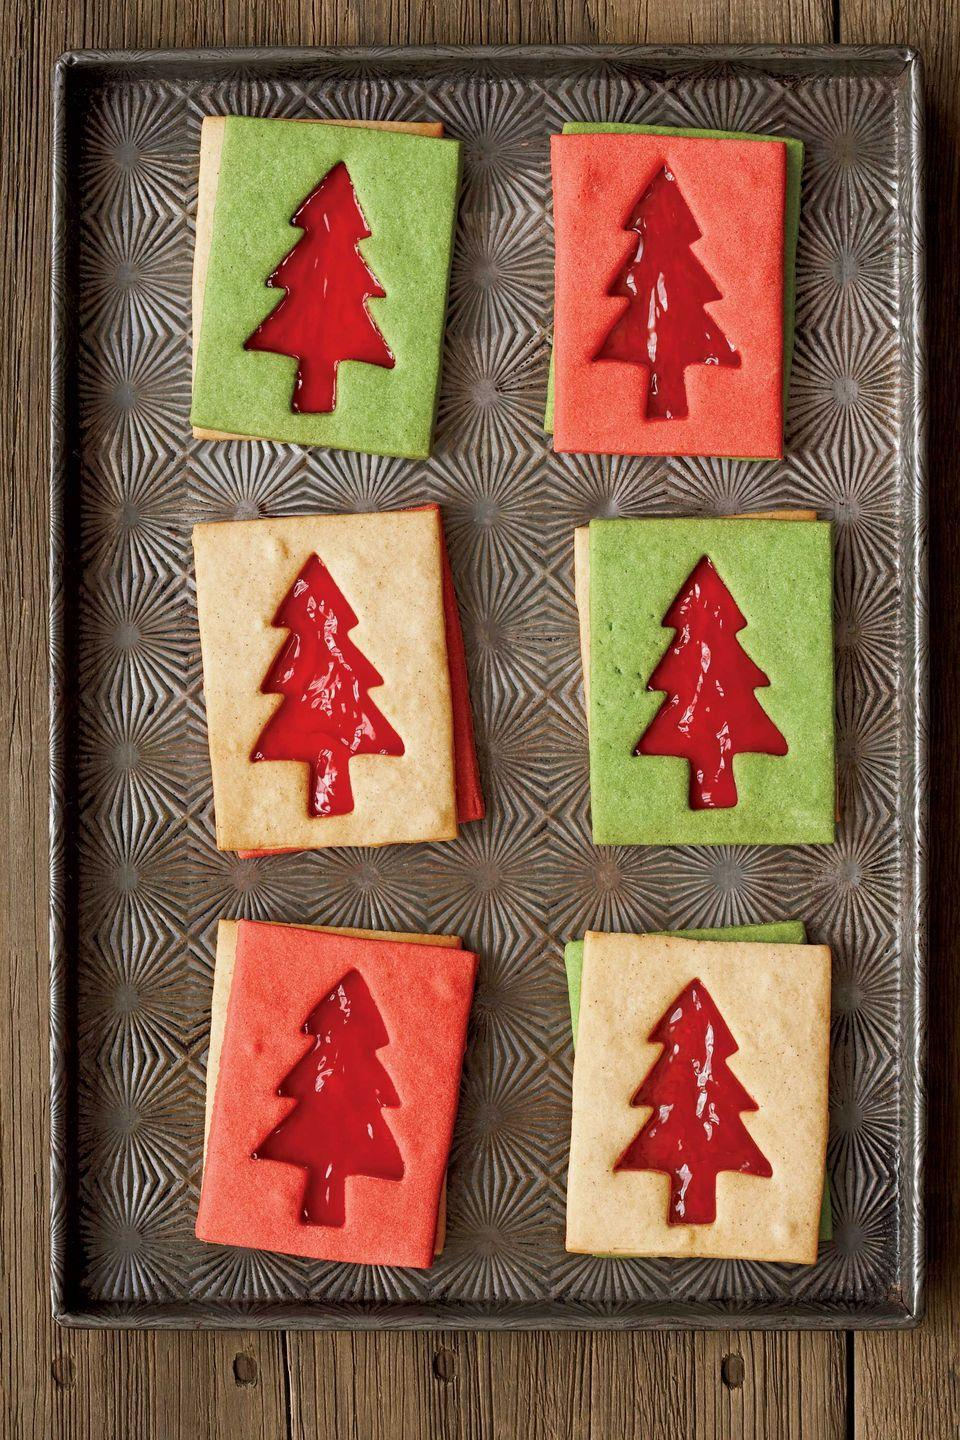 "<p>This smart take on traditional Christmas tree cookies uses colored dough and the negative shapes to make delicious Linzer-style cookie sandwiches. Smucker's jelly or preserves are a good choice.</p><p><strong><a href=""https://www.countryliving.com/food-drinks/recipes/a2022/sugar-cookie-dough-clv1207/"" rel=""nofollow noopener"" target=""_blank"" data-ylk=""slk:Get the recipe"" class=""link rapid-noclick-resp"">Get the recipe</a>.</strong></p><p><strong><a class=""link rapid-noclick-resp"" href=""https://www.amazon.com/dp/B01MAWSYOU/?tag=syn-yahoo-20&ascsubtag=%5Bartid%7C10050.g.2777%5Bsrc%7Cyahoo-us"" rel=""nofollow noopener"" target=""_blank"" data-ylk=""slk:SHOP TREE COOKIE CUTTERS"">SHOP TREE COOKIE CUTTERS</a><br></strong></p>"